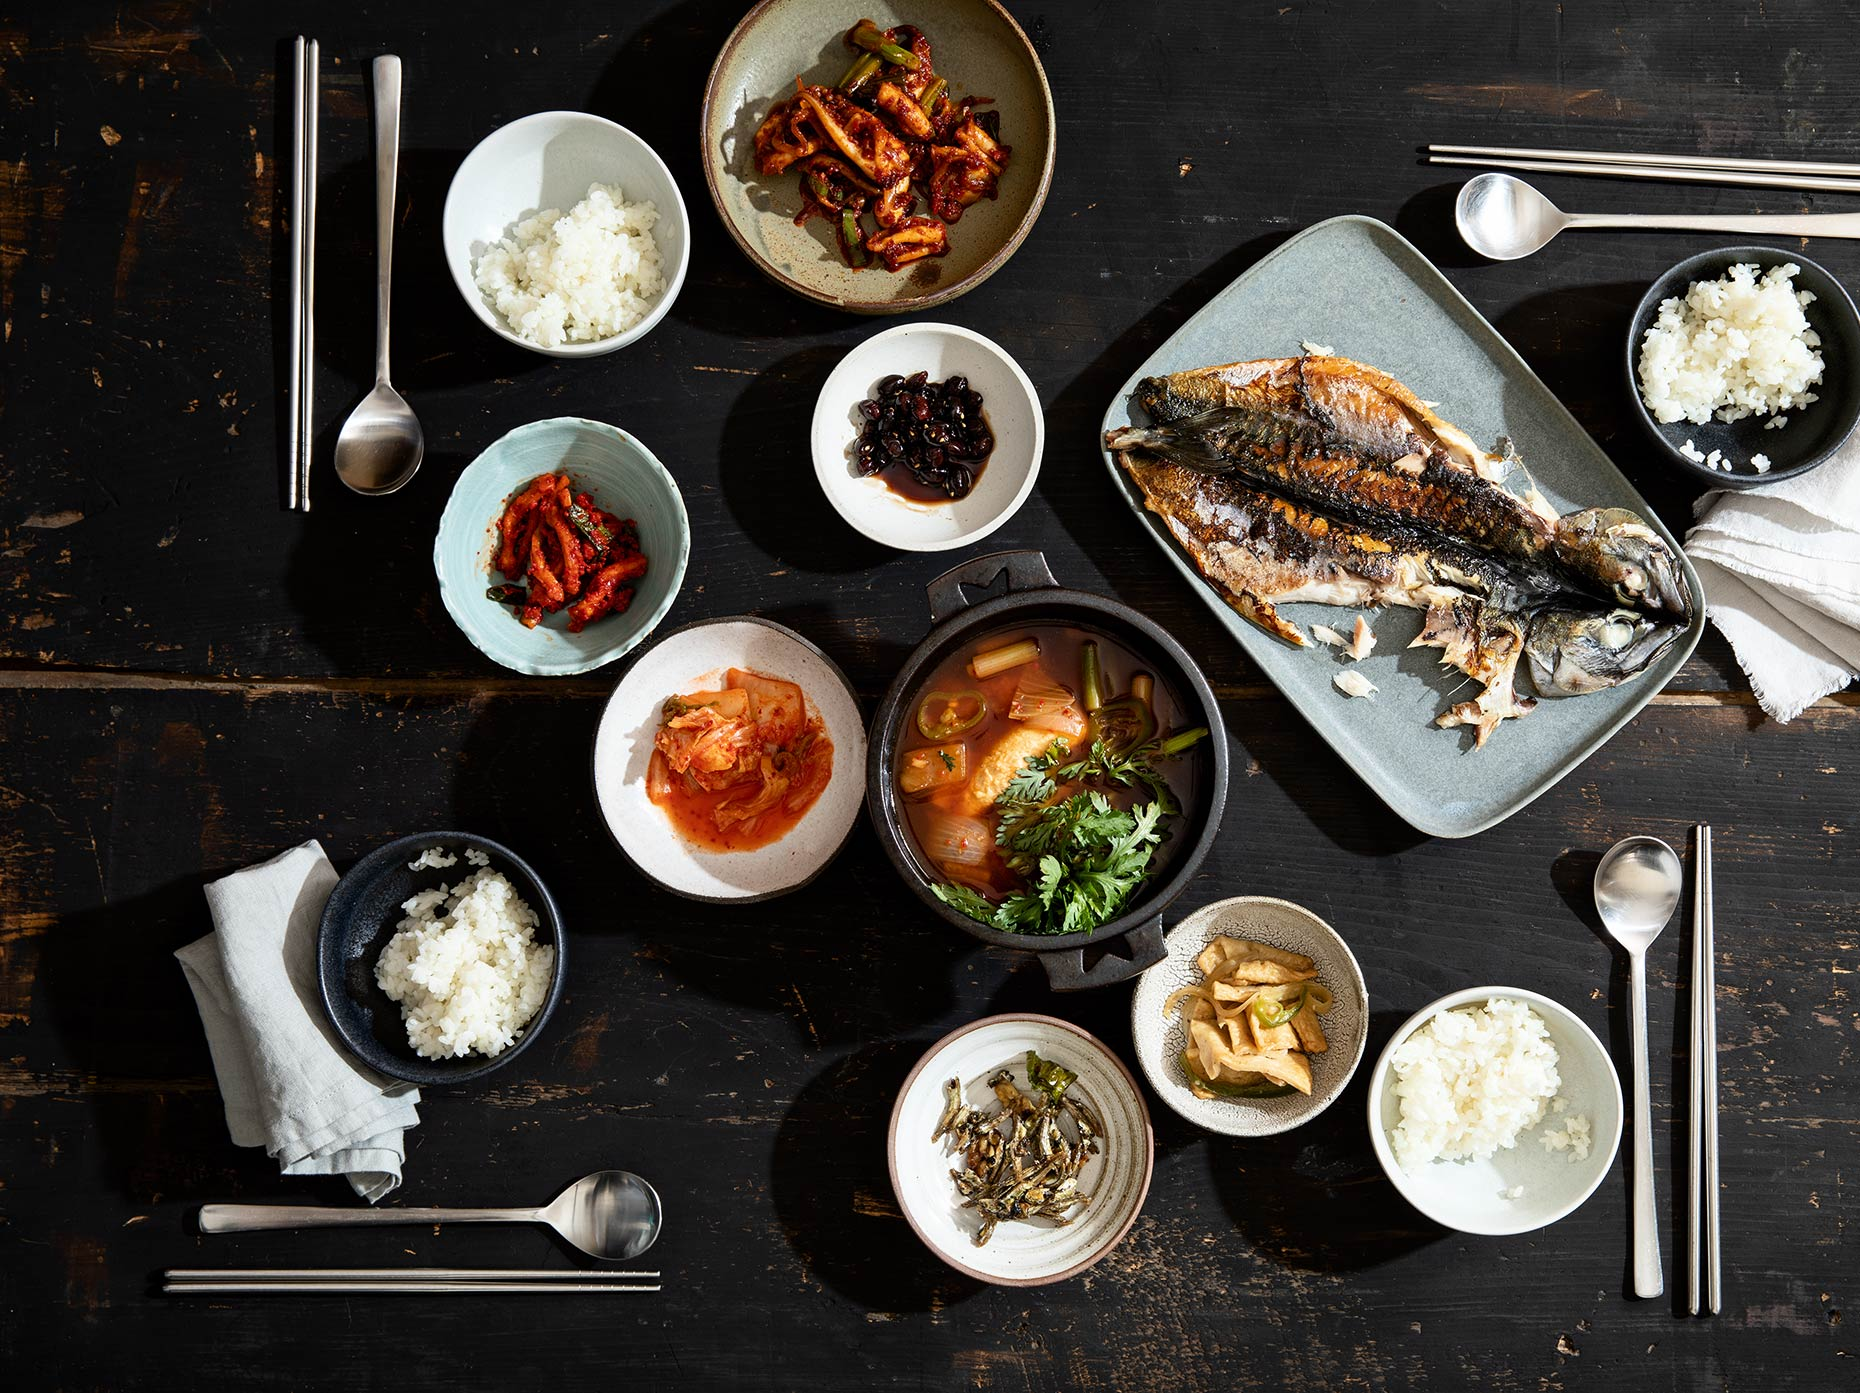 Kristin Teig Photography | Meal for Hooni Kim